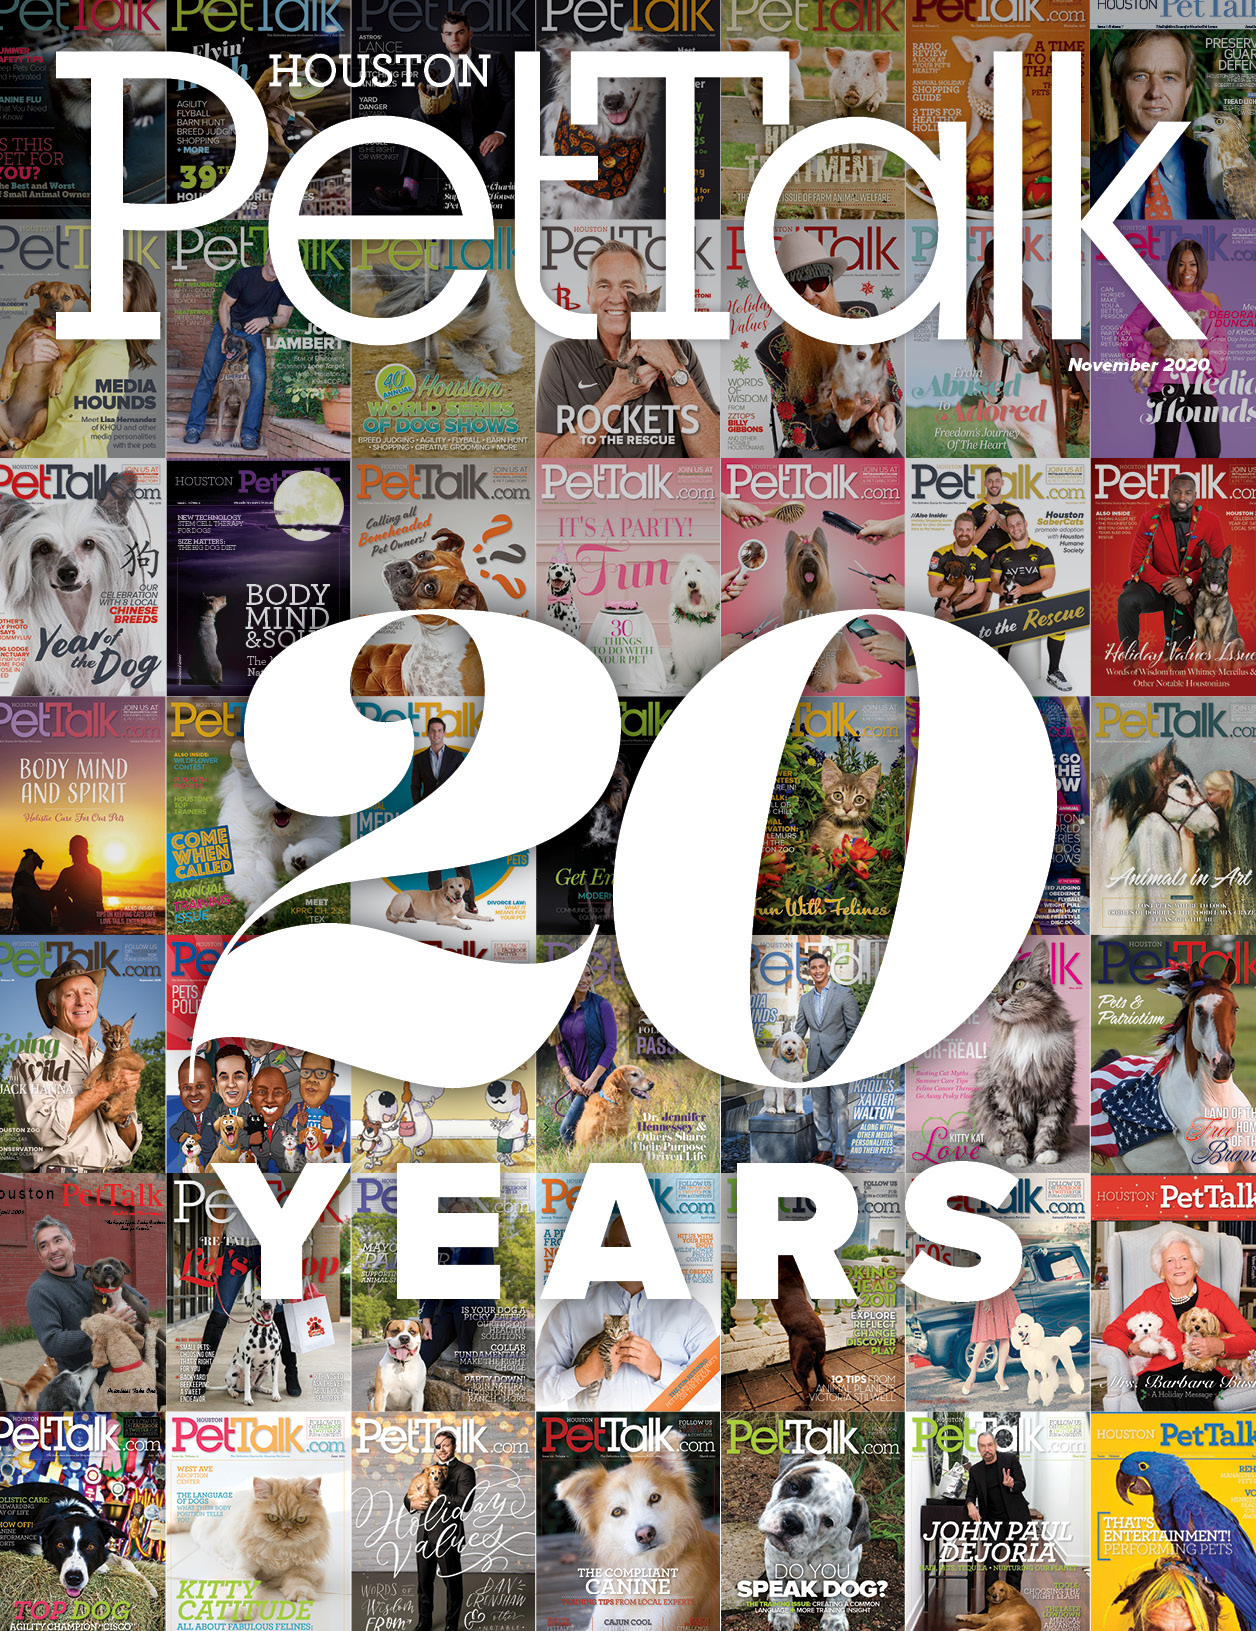 November 2020 Digital Issue of Houston PetTalk